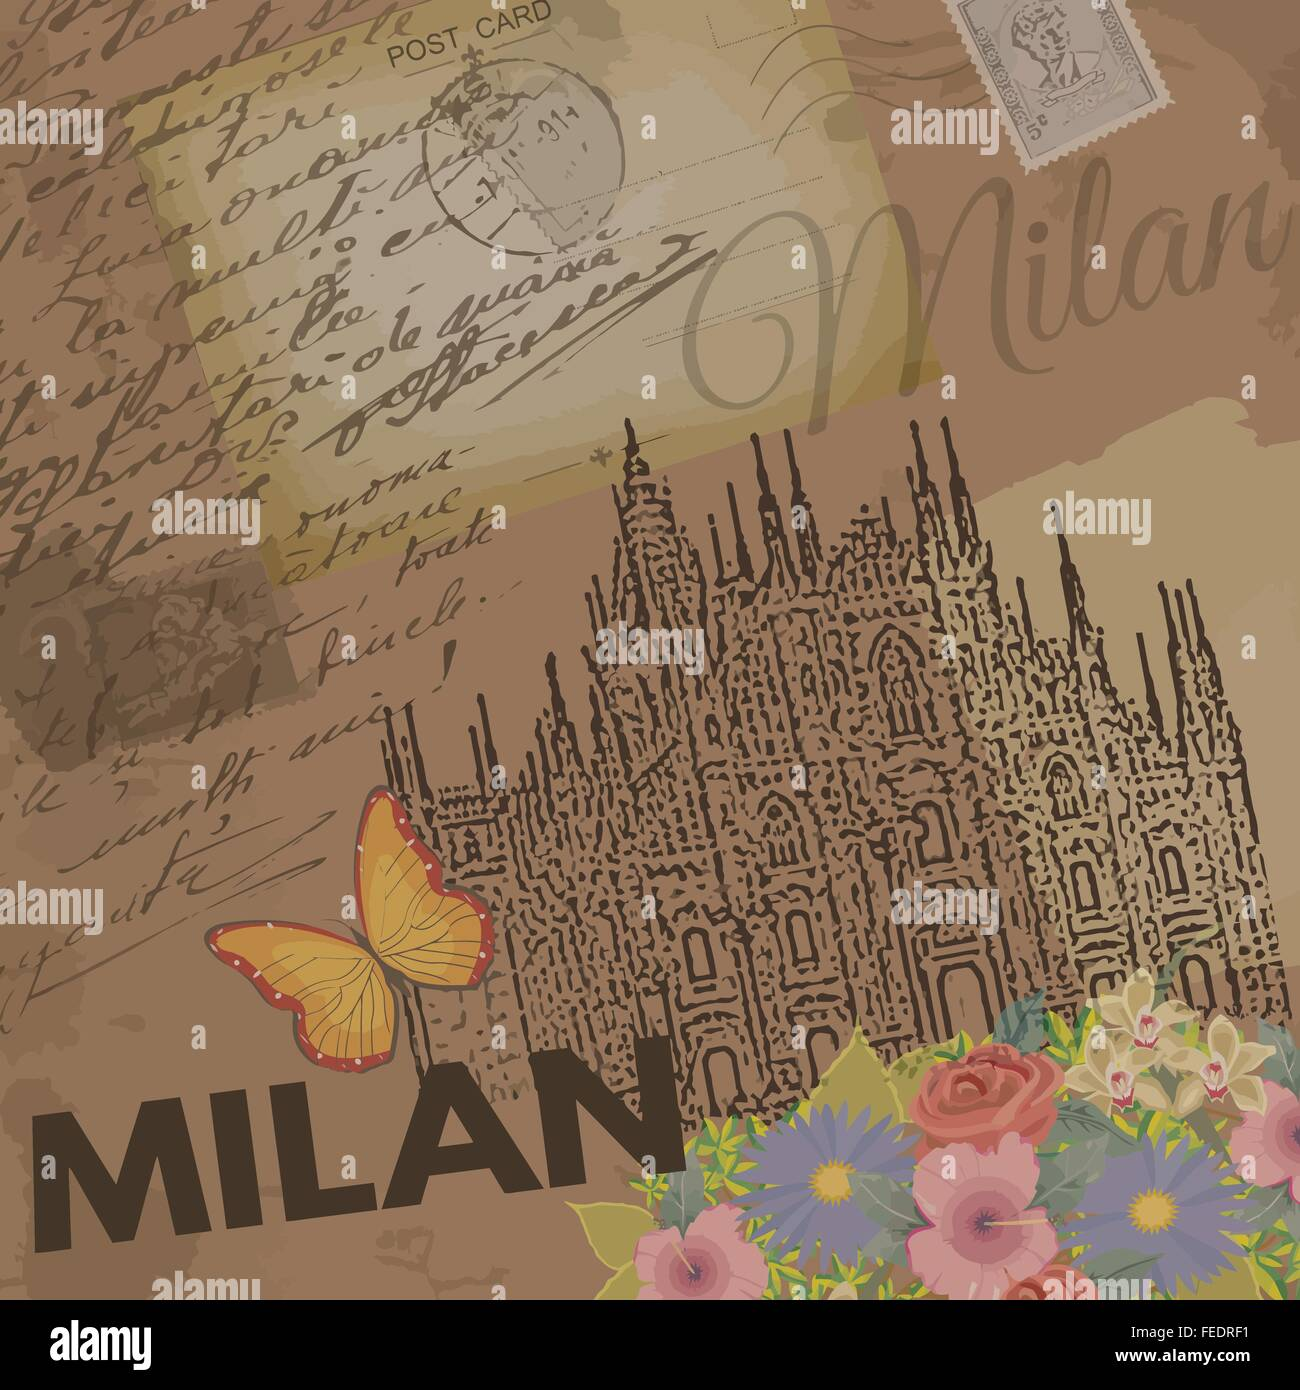 Milan vintage poster on nostalgic retro background with old post cards, letters and Cathedral of Milan, vector illustration - Stock Vector